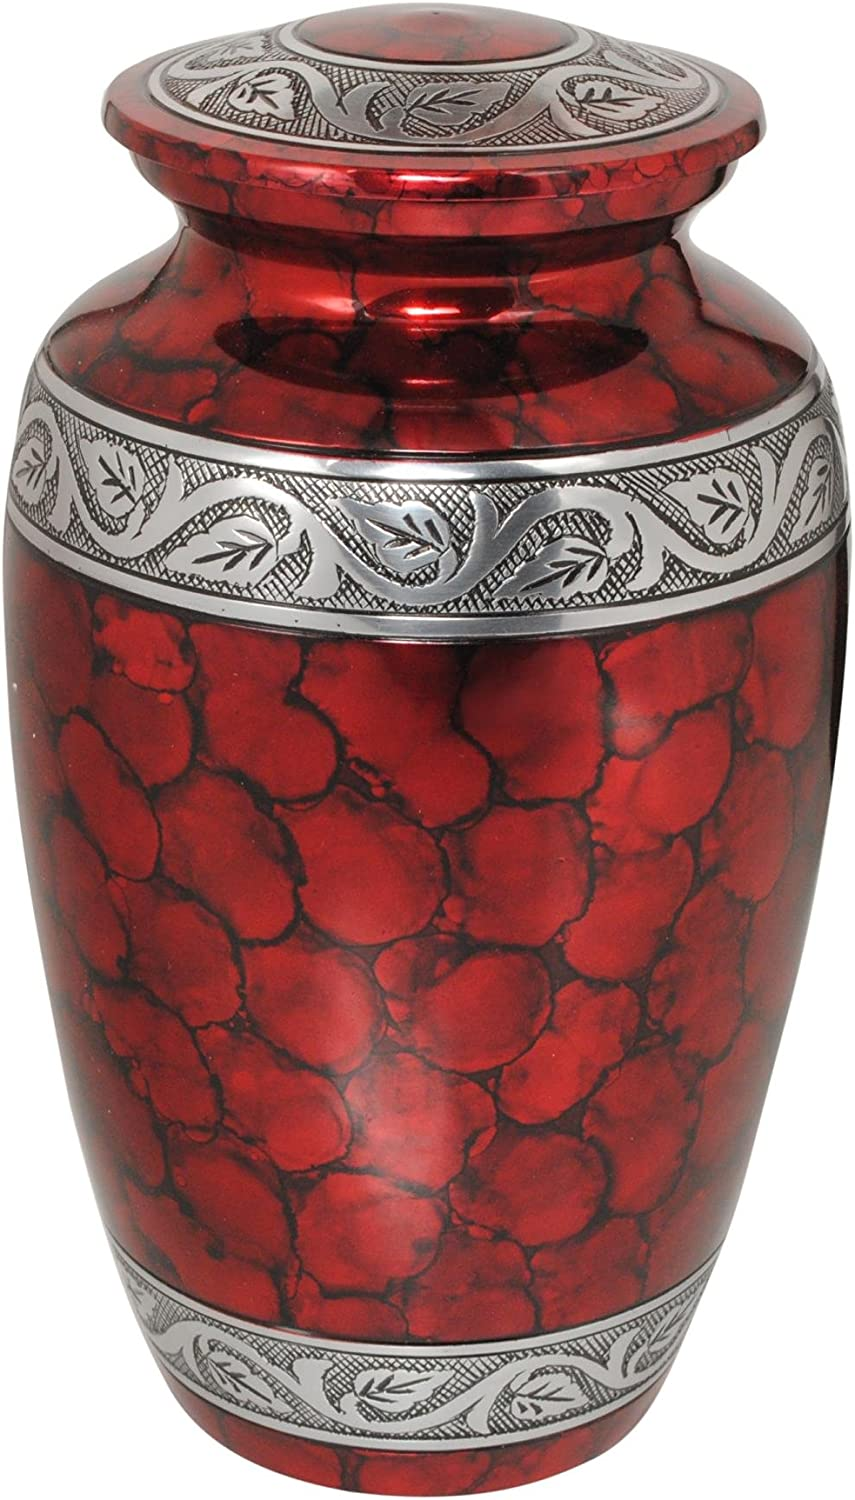 5 ☆ All items in the store popular UrnsDirect2U Middleton Royal Red Adult Urn